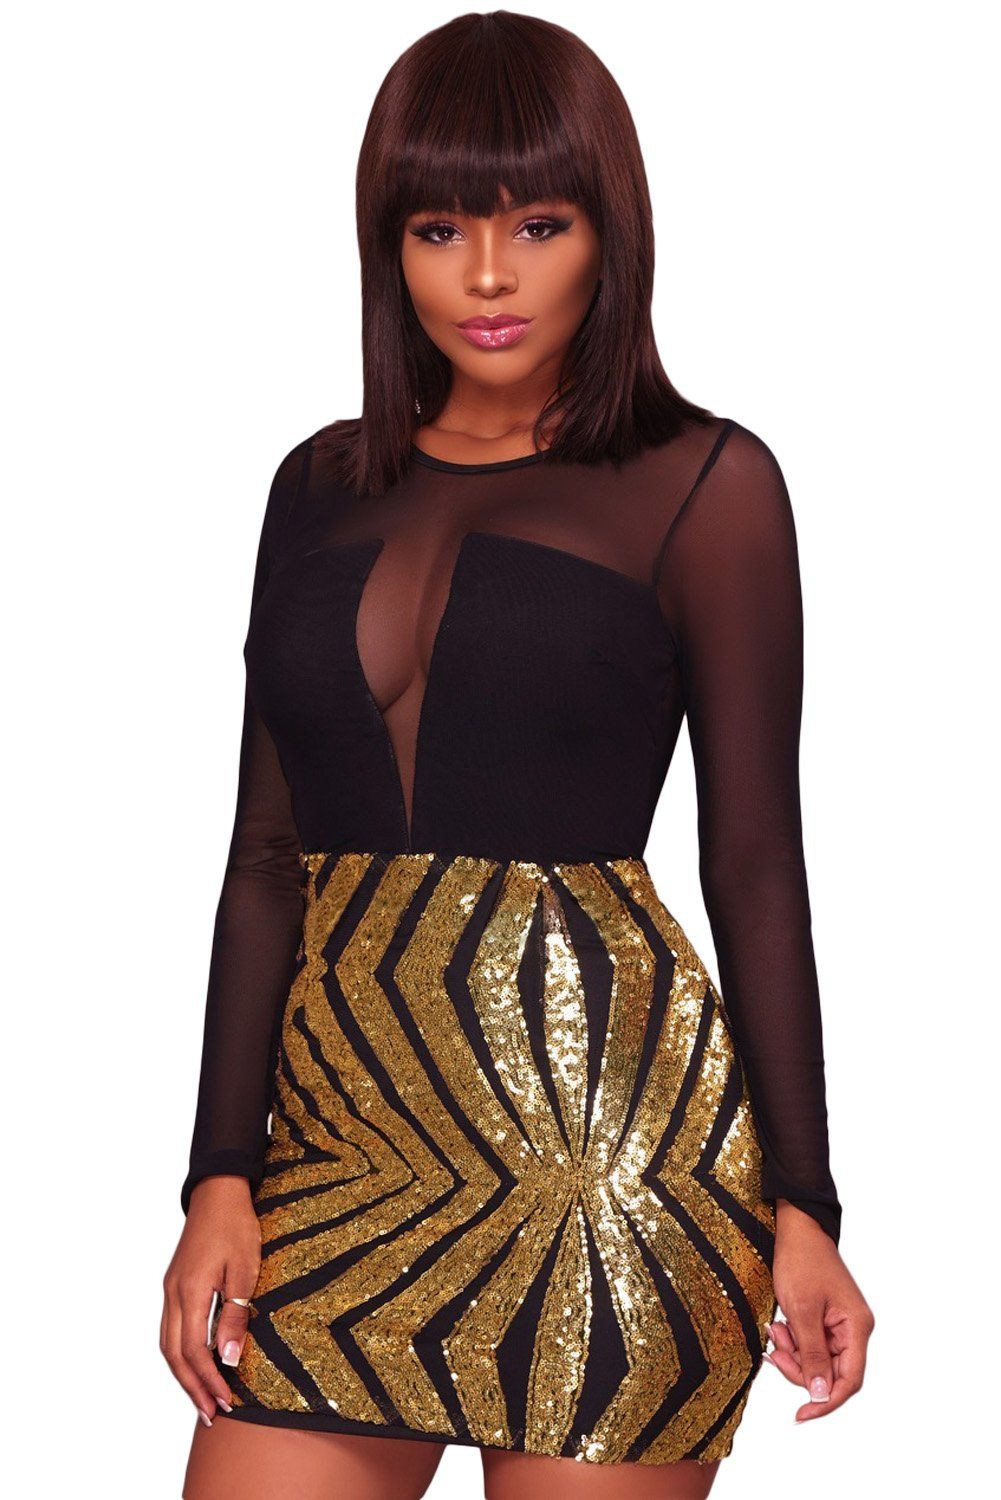 Robe Club Courte Maille Noire Paillettes Or Manches Longues Pas Cher  www.modebuy.com  Modebuy  Modebuy  Or  Noir  simple  mode  style 8486e4326b6f